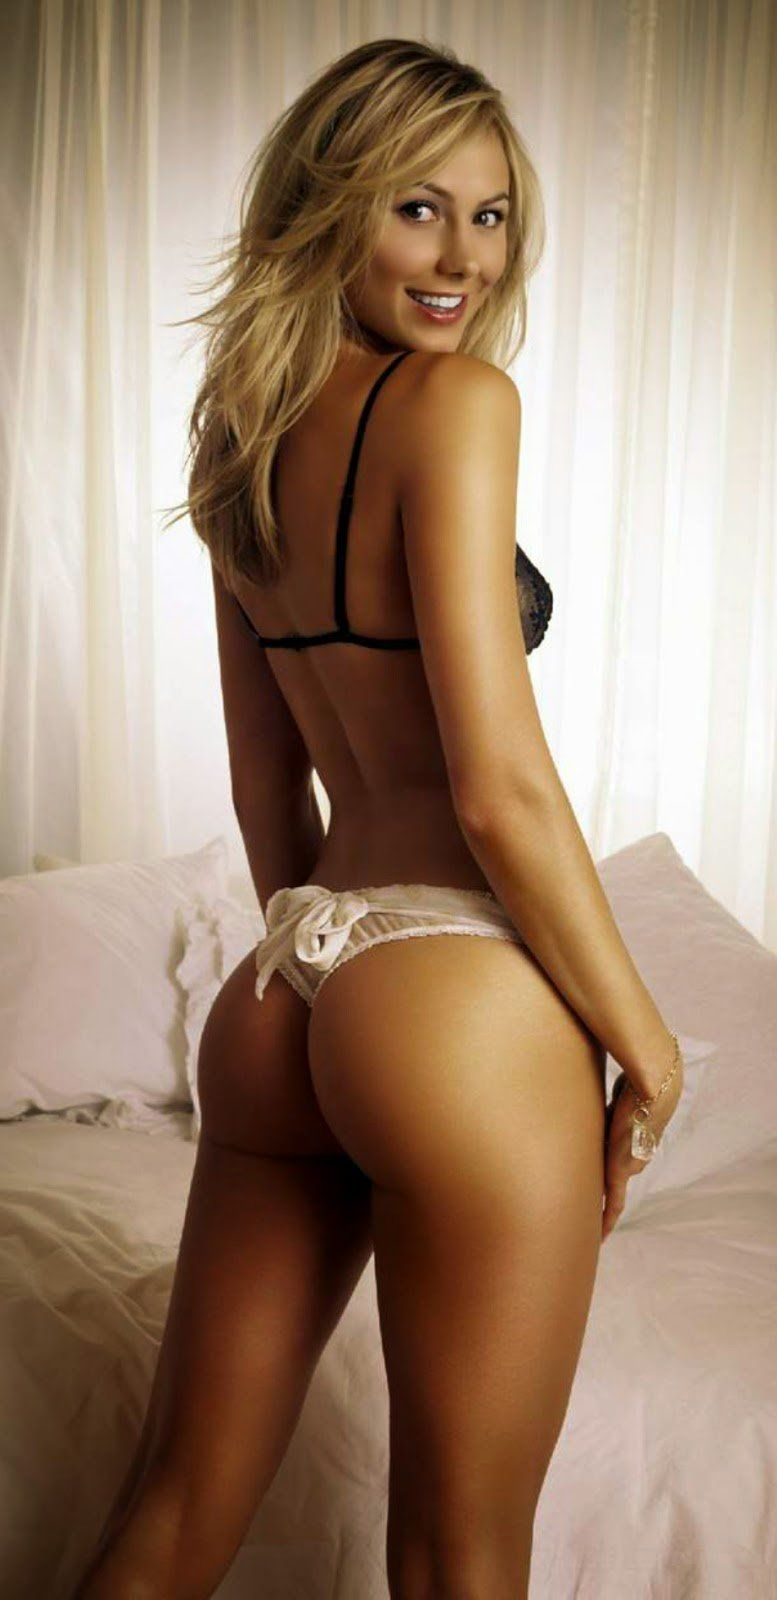 Never get stacy keibler butt